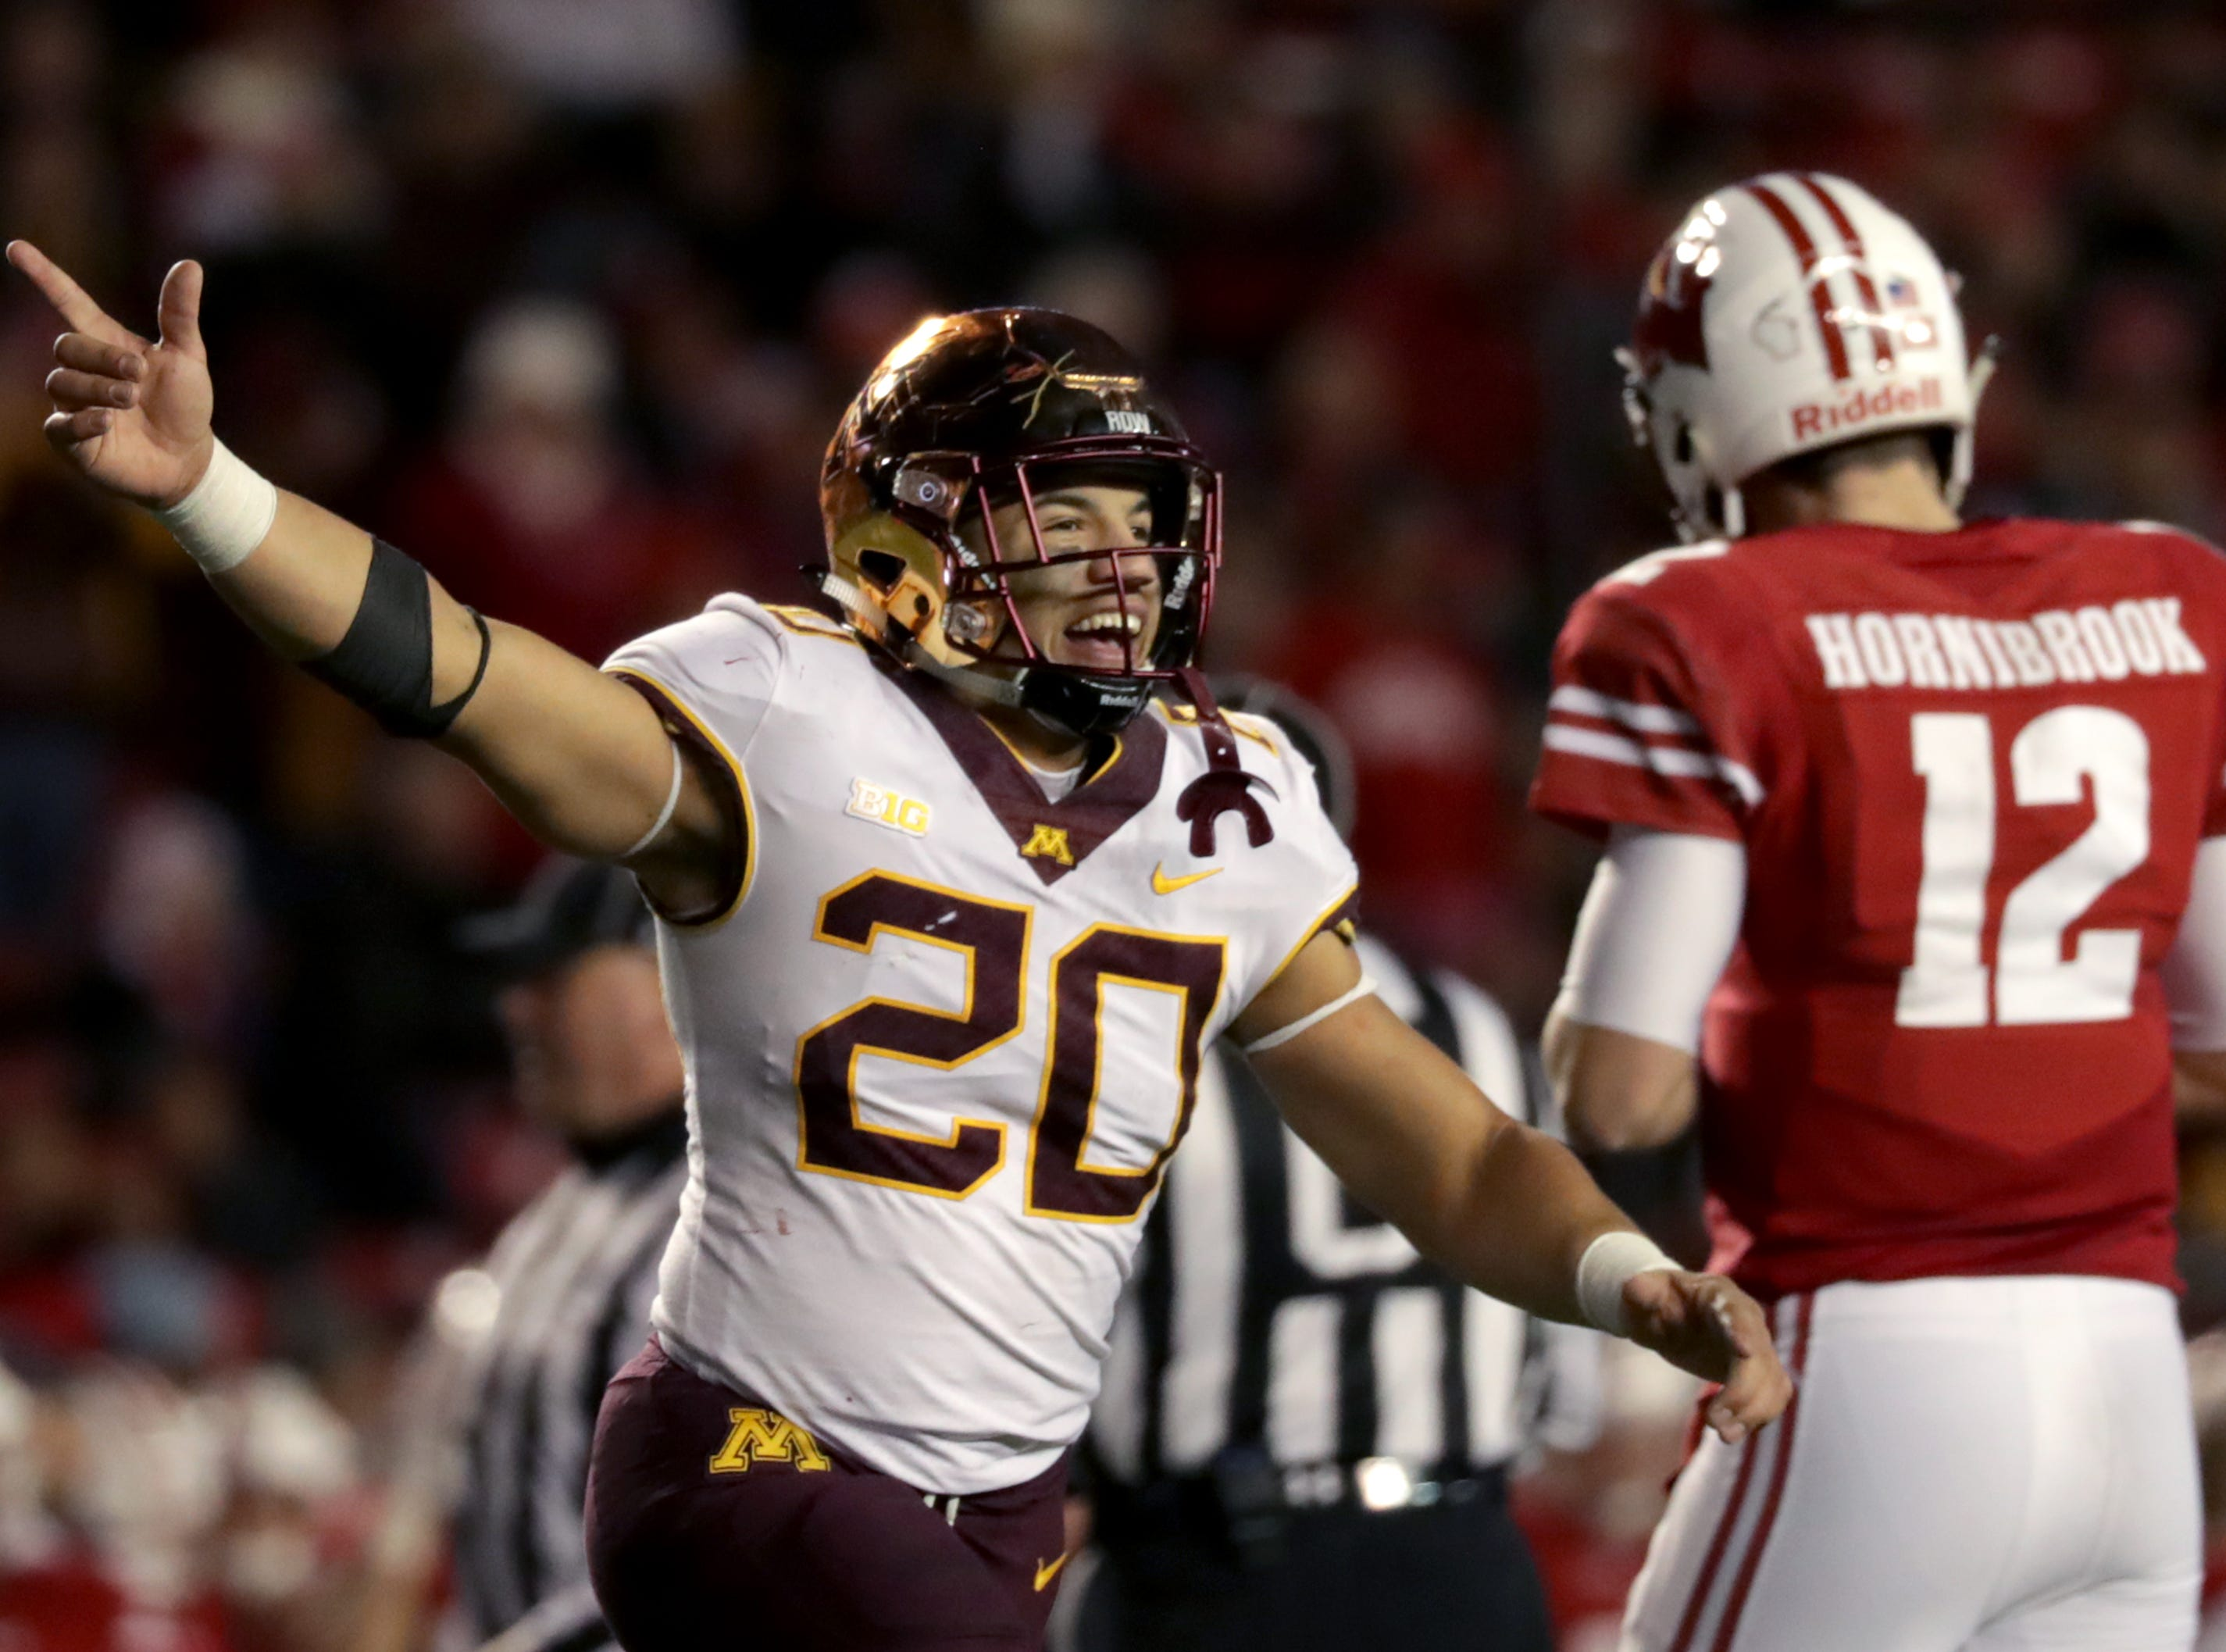 Minnesota linebacker Julian Huff celebrates after a late fourth quarter interception by Wisconsin quarterback Alex Hornibrook during their NCAA football game on Saturday, November 24, 2018, at Camp Randall in Madison, Wis.Wm. Glasheen/USA TODAY NETWORK-Wisconsin.